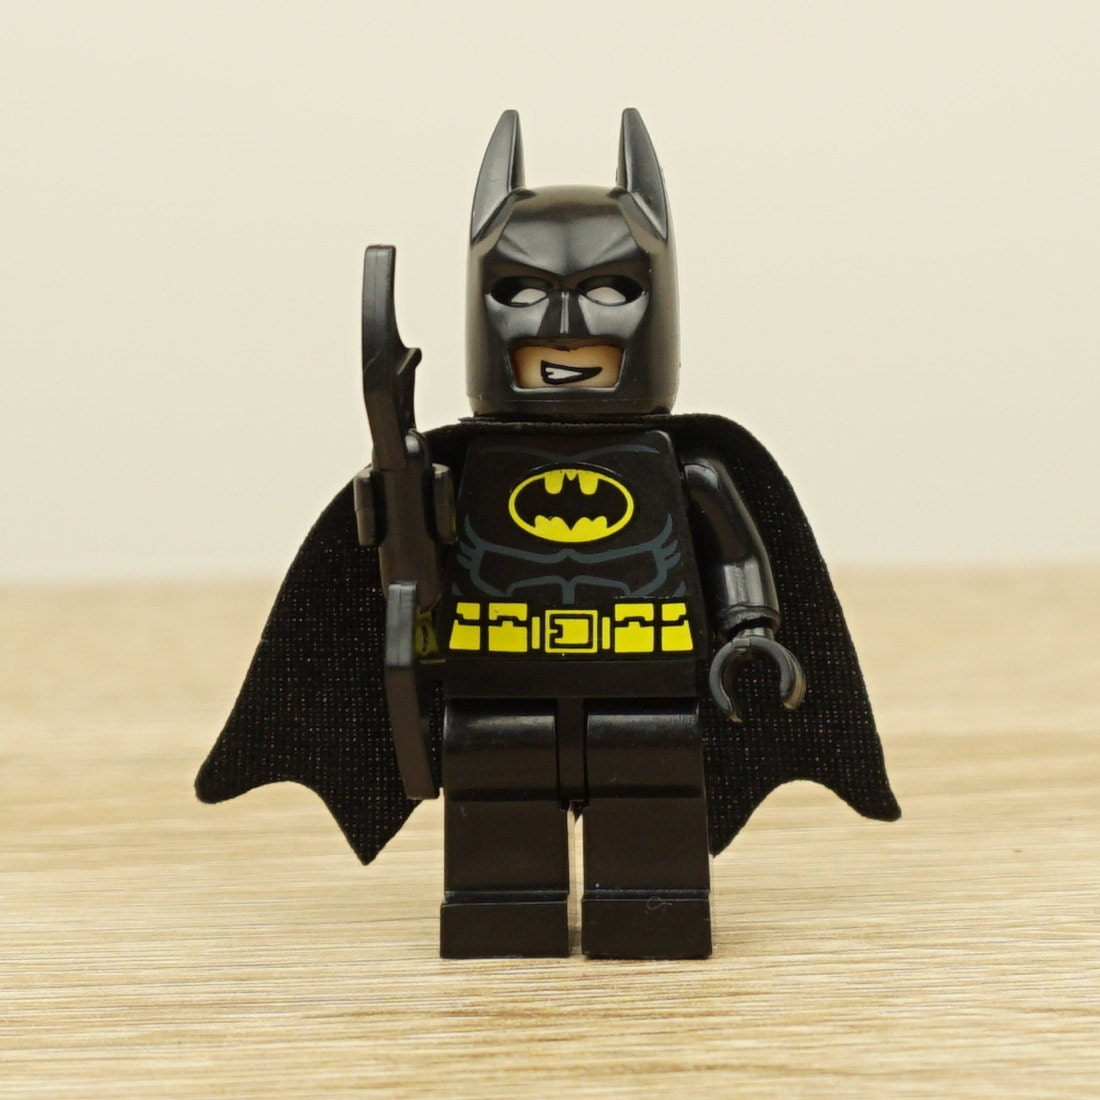 lego batman cake topper batman minifig batman lego cake topper batman lego topper 5453